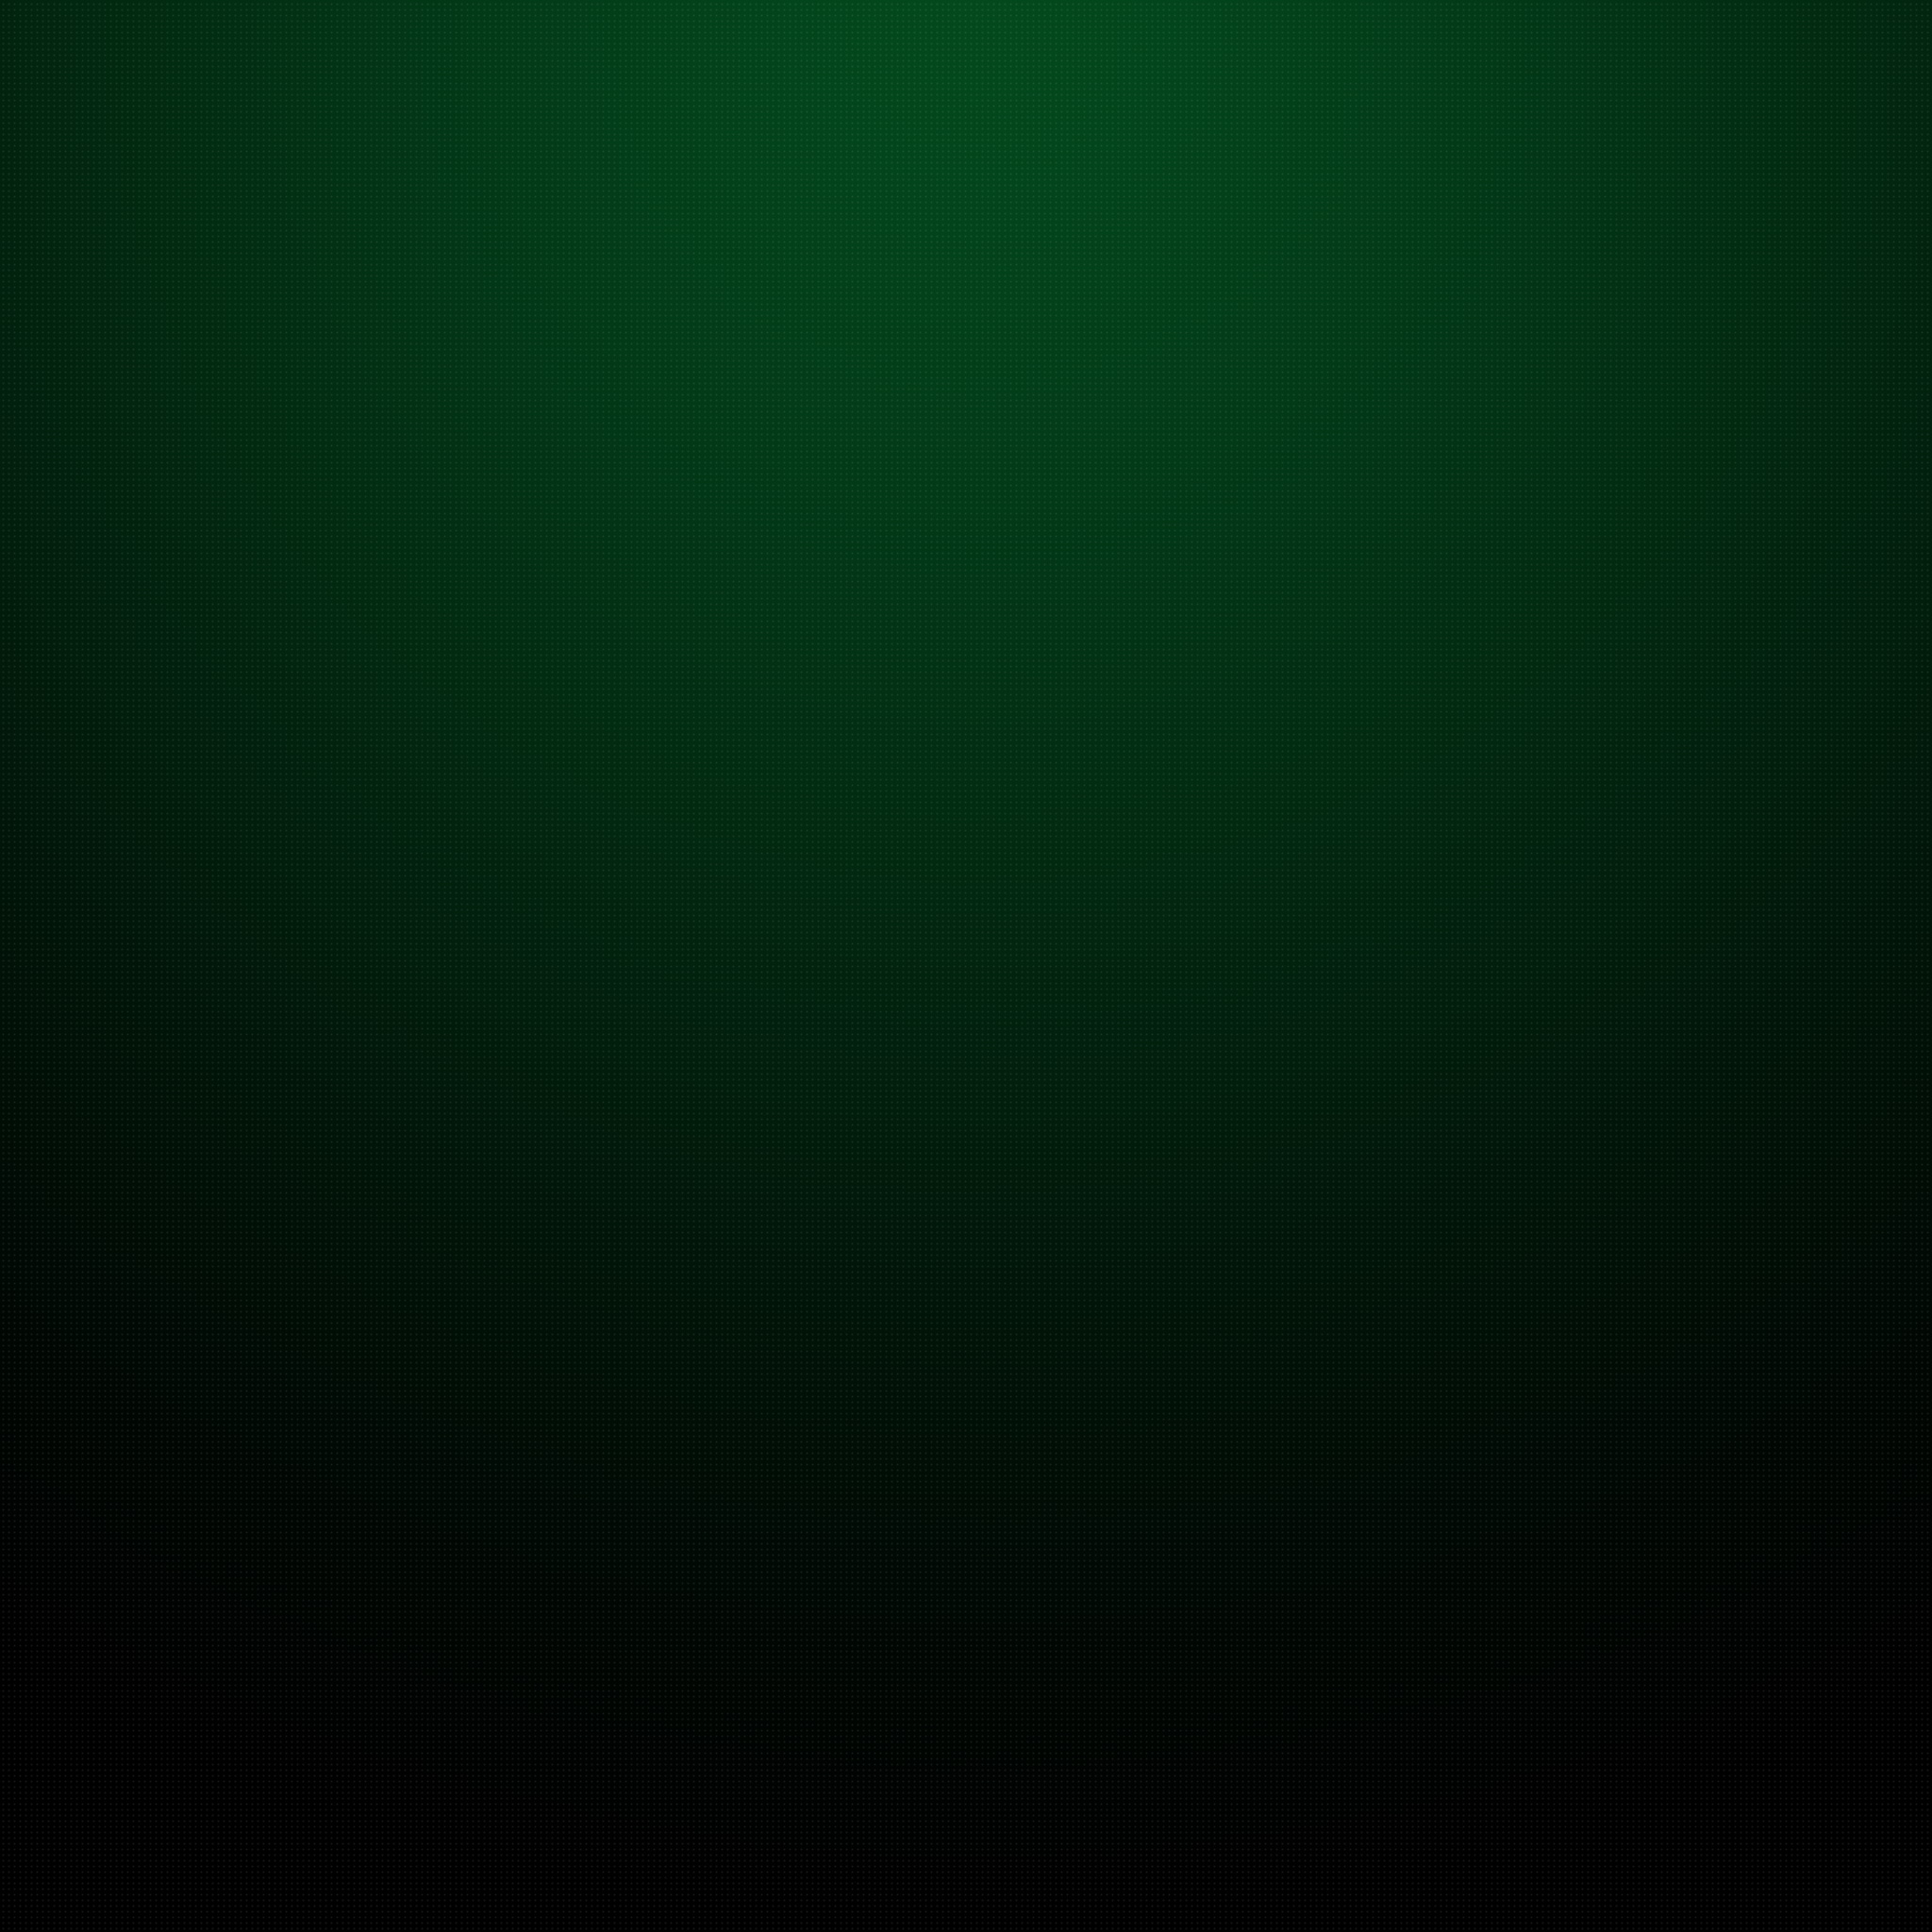 Dark Green Wallpaper HD - WallpaperSafari